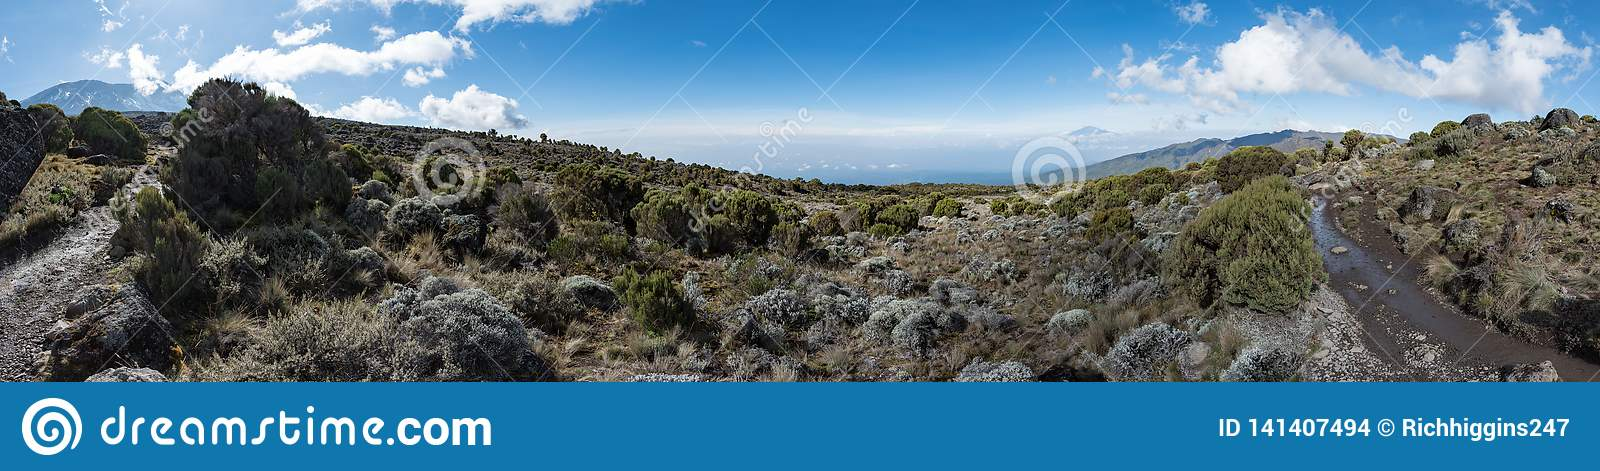 Panoramic view taken in the moorland zone of the Machame route on Mount Kilimanjaro